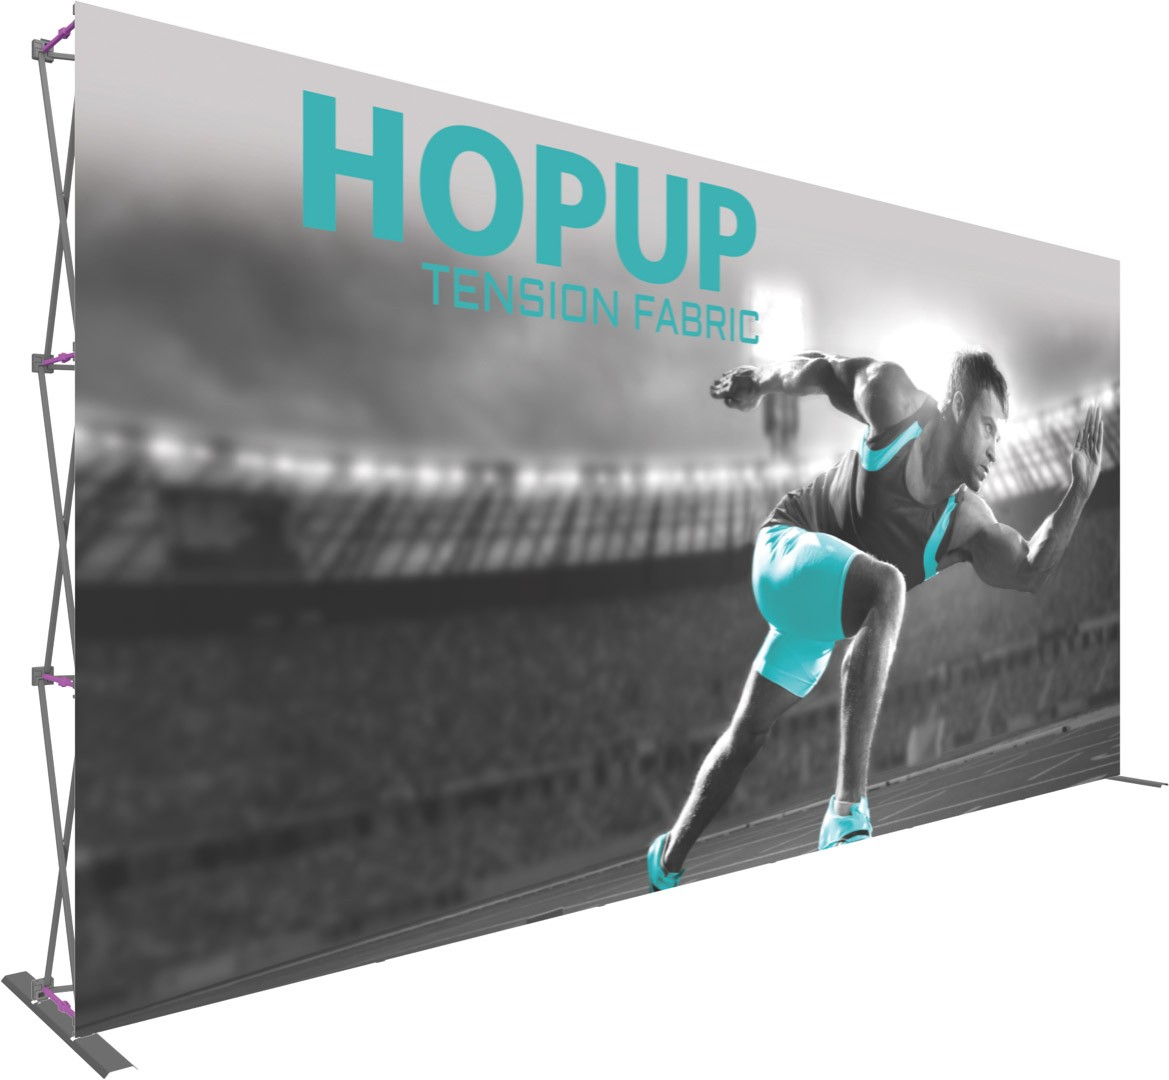 Fabric Pop Up Exhibition Stands : Hopup tension fabric pop up display